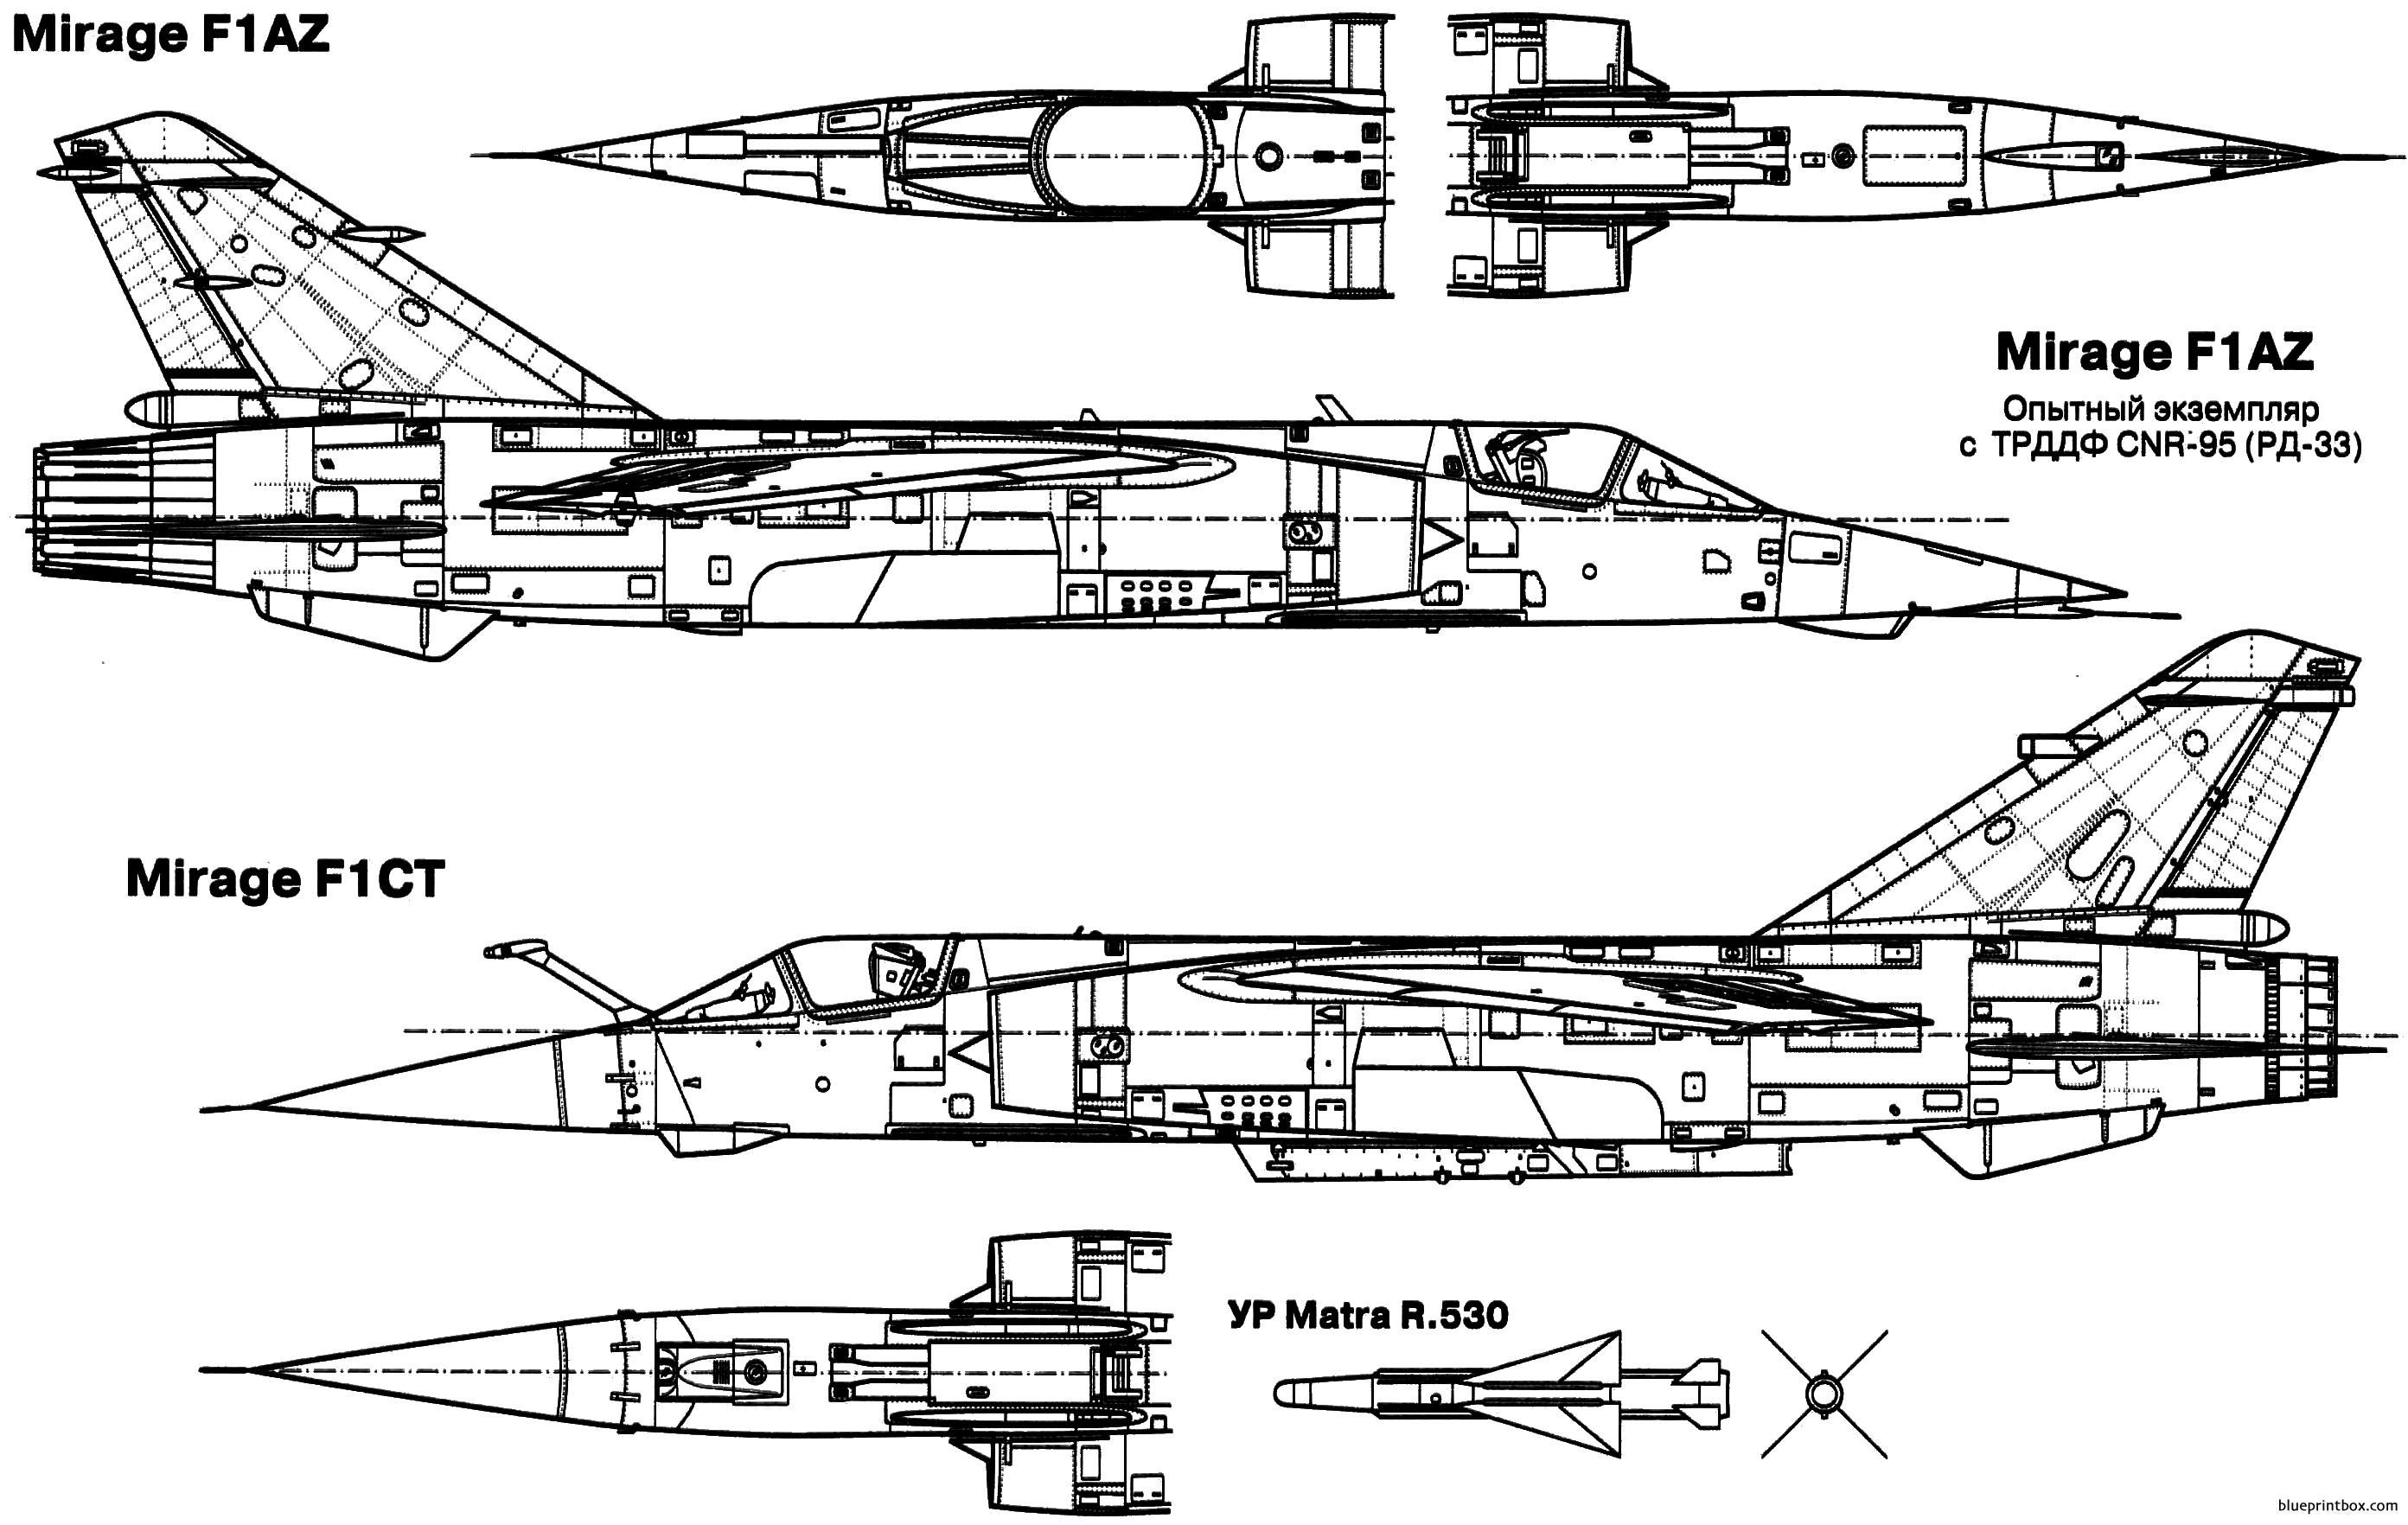 Dassault mirage f1 7 blueprintbox free plans and dassault mirage f1 7 blueprintbox free plans and blueprints of cars malvernweather Images